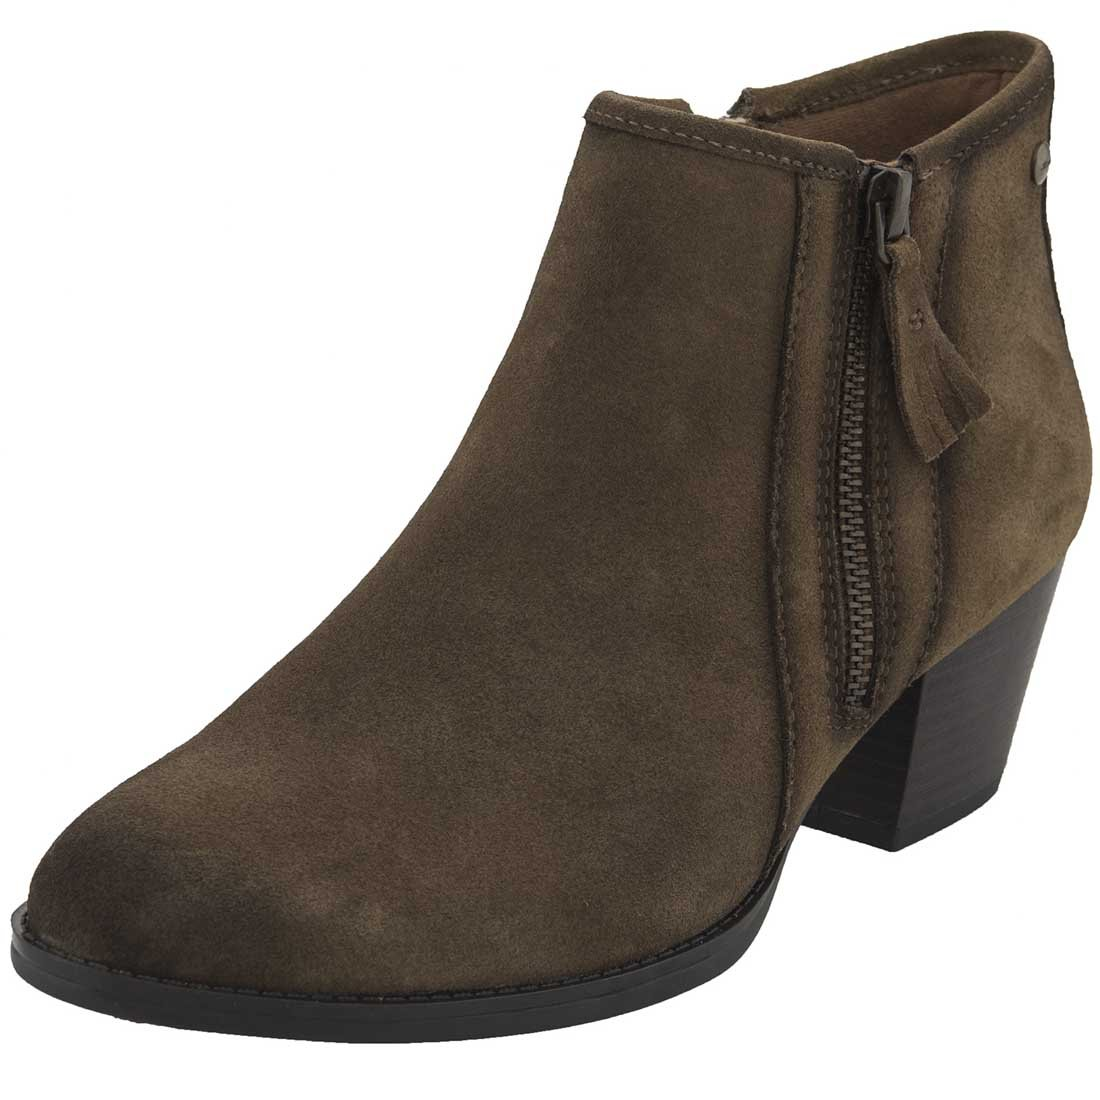 Earth Womens Osprey Boot B06X9RPQ4W 7.5 B(M) US|Brown Suede/Water Resistant